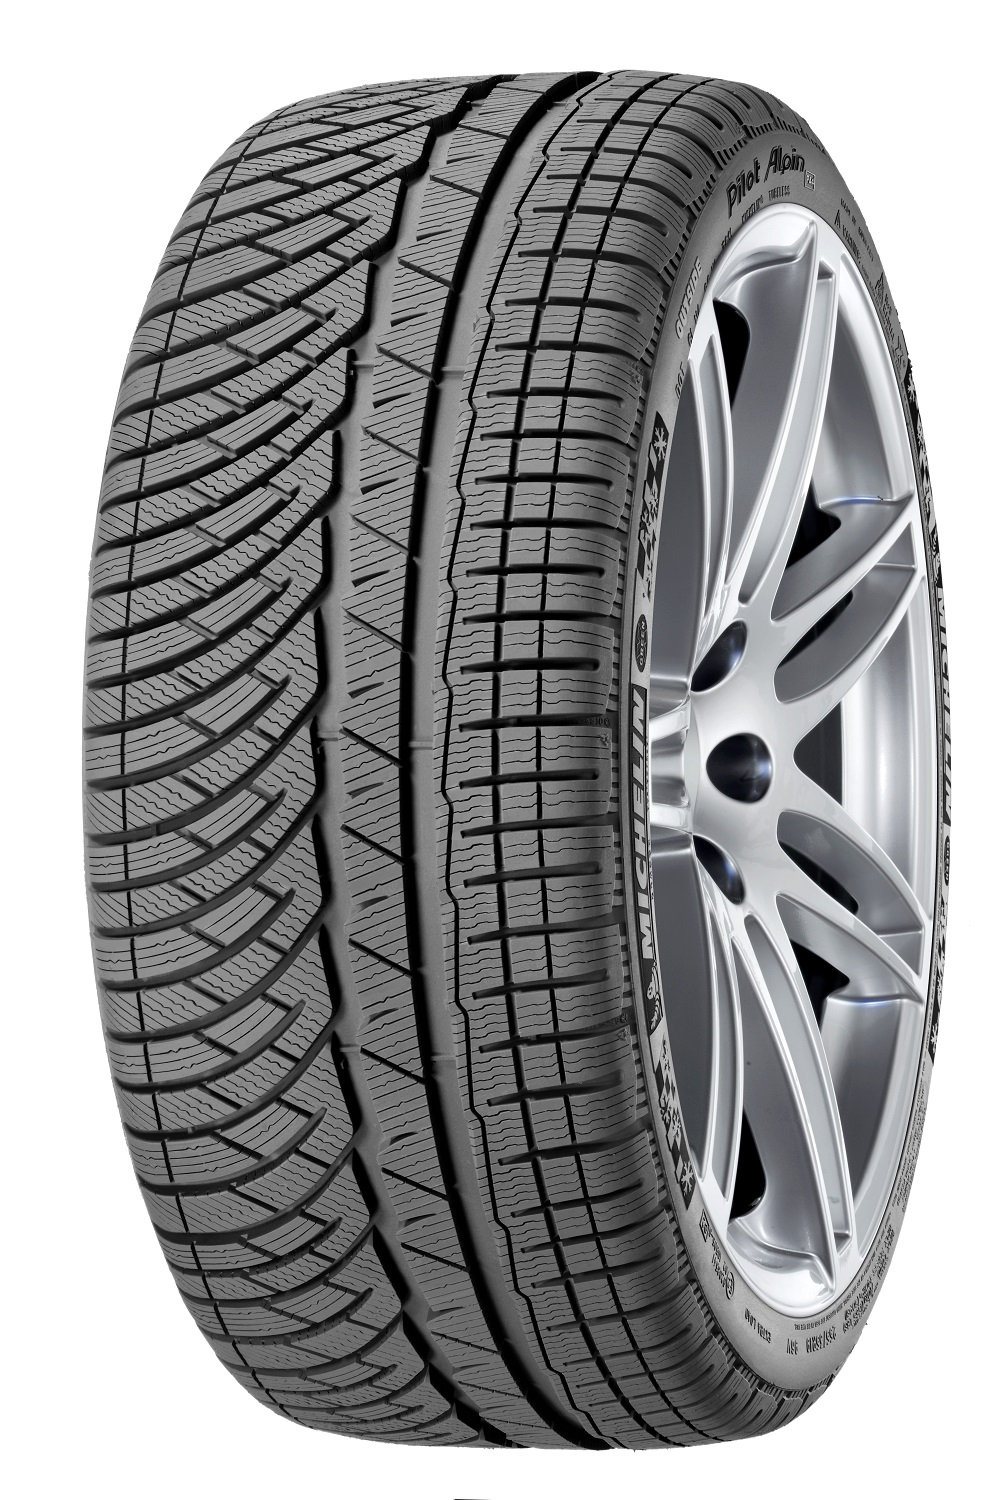 Anvelopa iarna MICHELIN PILOT ALPIN 4 XL 225/40 R18 92W